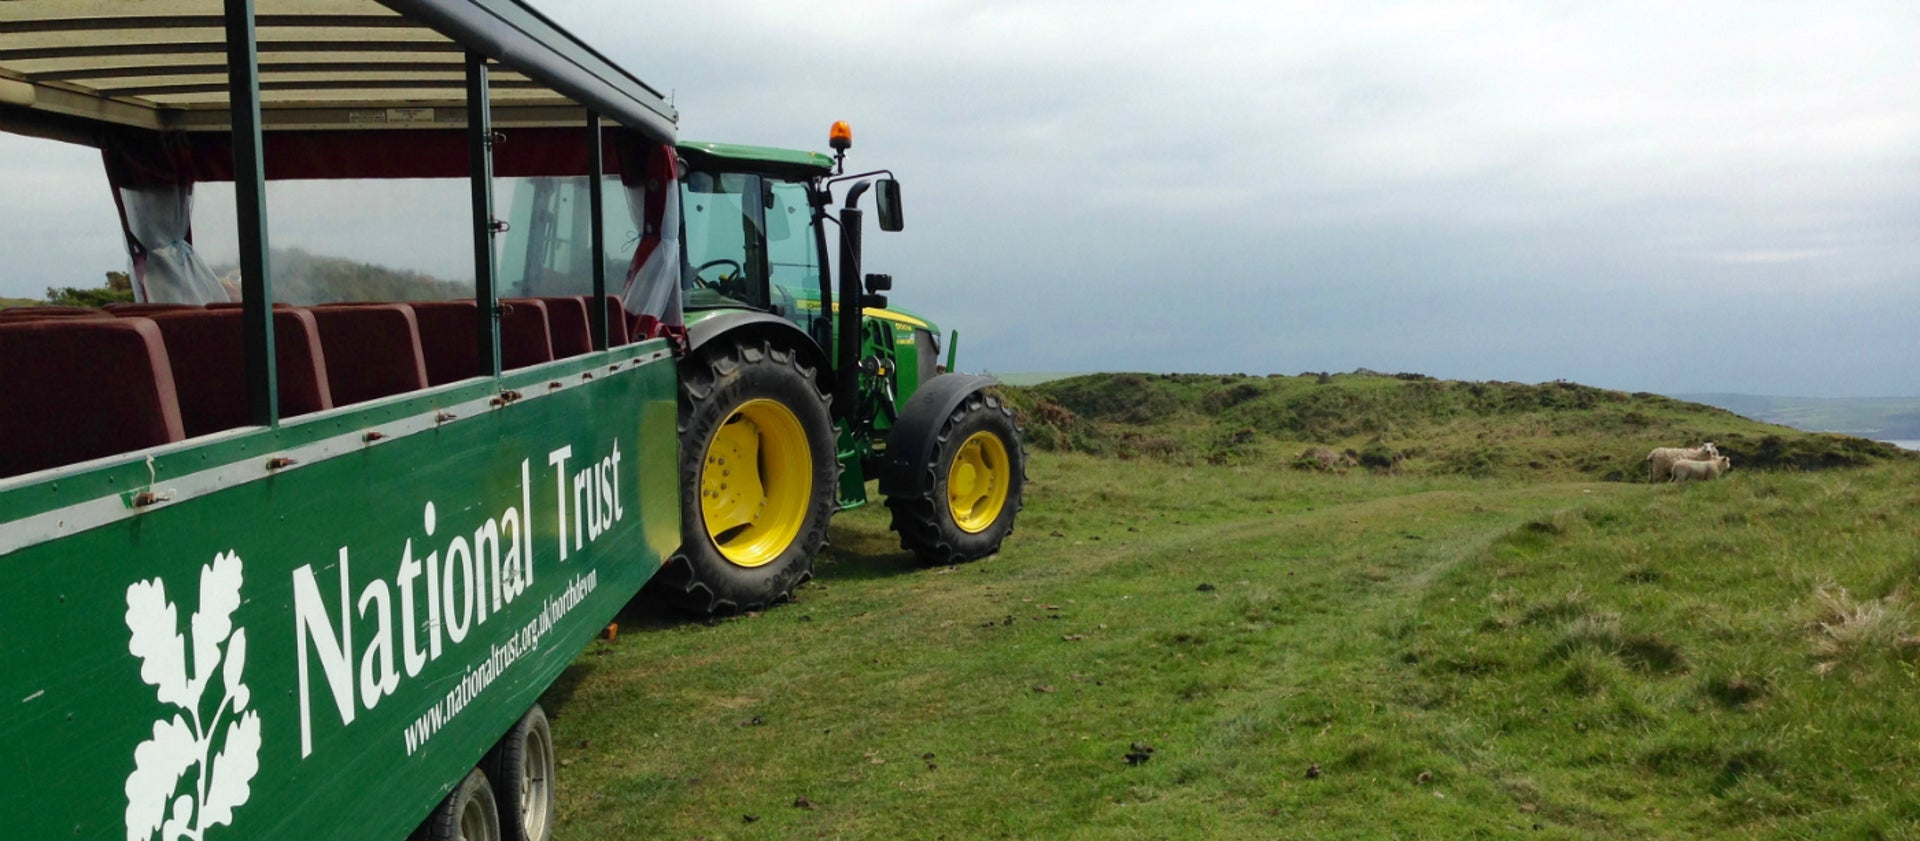 Tractor Trailer Rides At Mortehoe National Trust